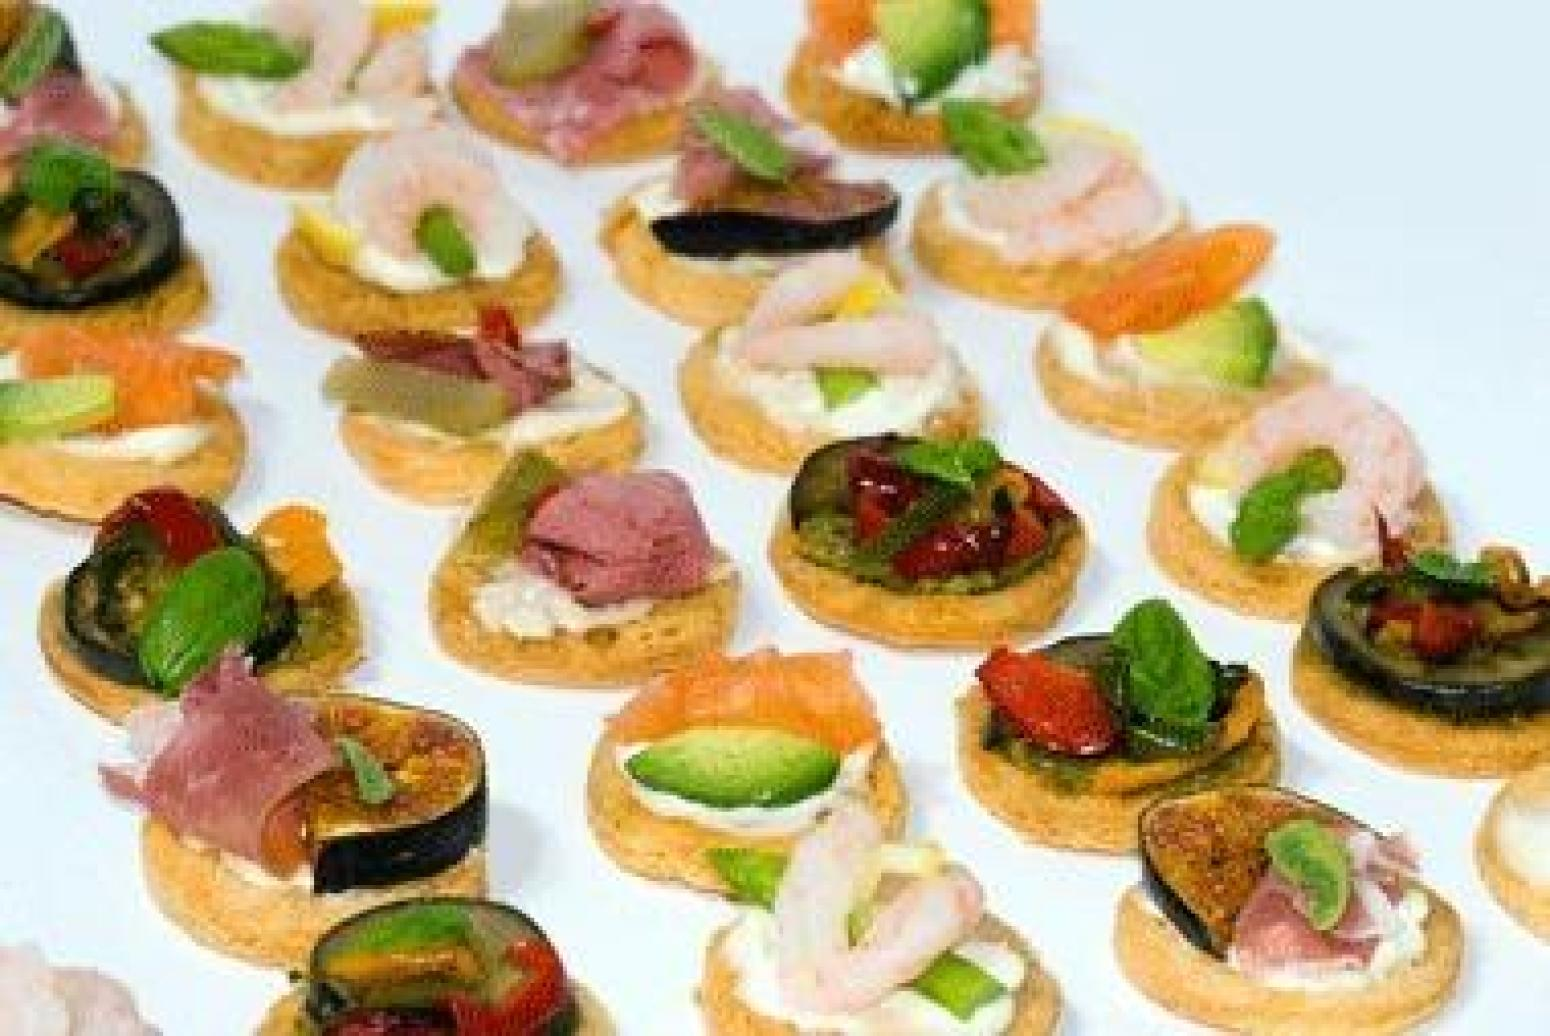 Canap s recipe 101 just a pinch recipes - Decoracion de canapes ...